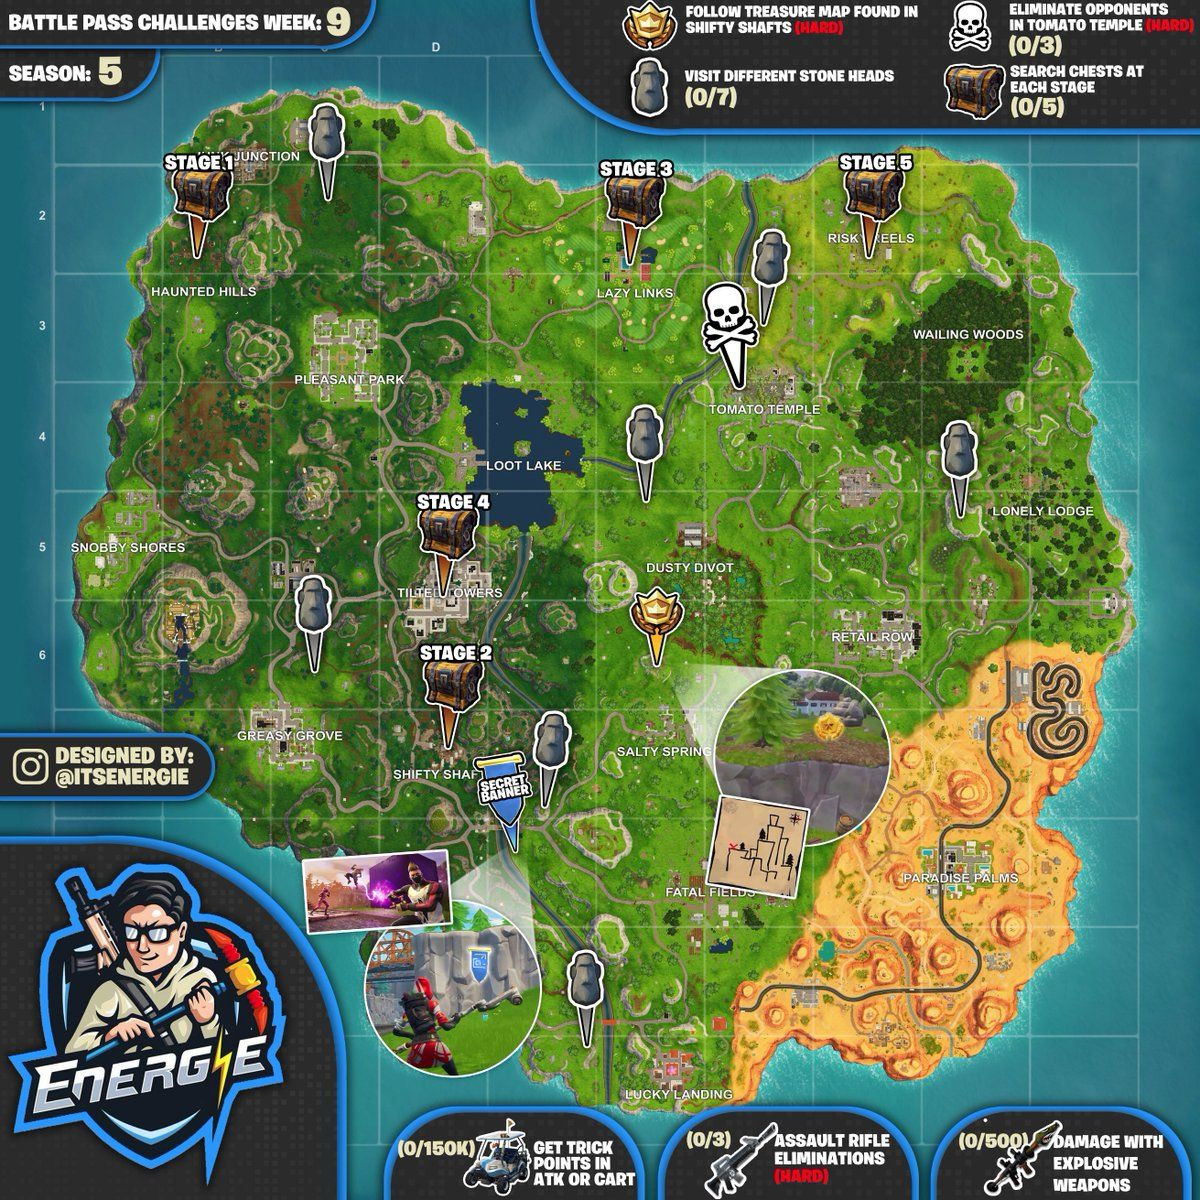 Printable fortnite Map Season 5 Awesome Cheat Sheet Map for fortnite Season 5 Week 9 Challenges